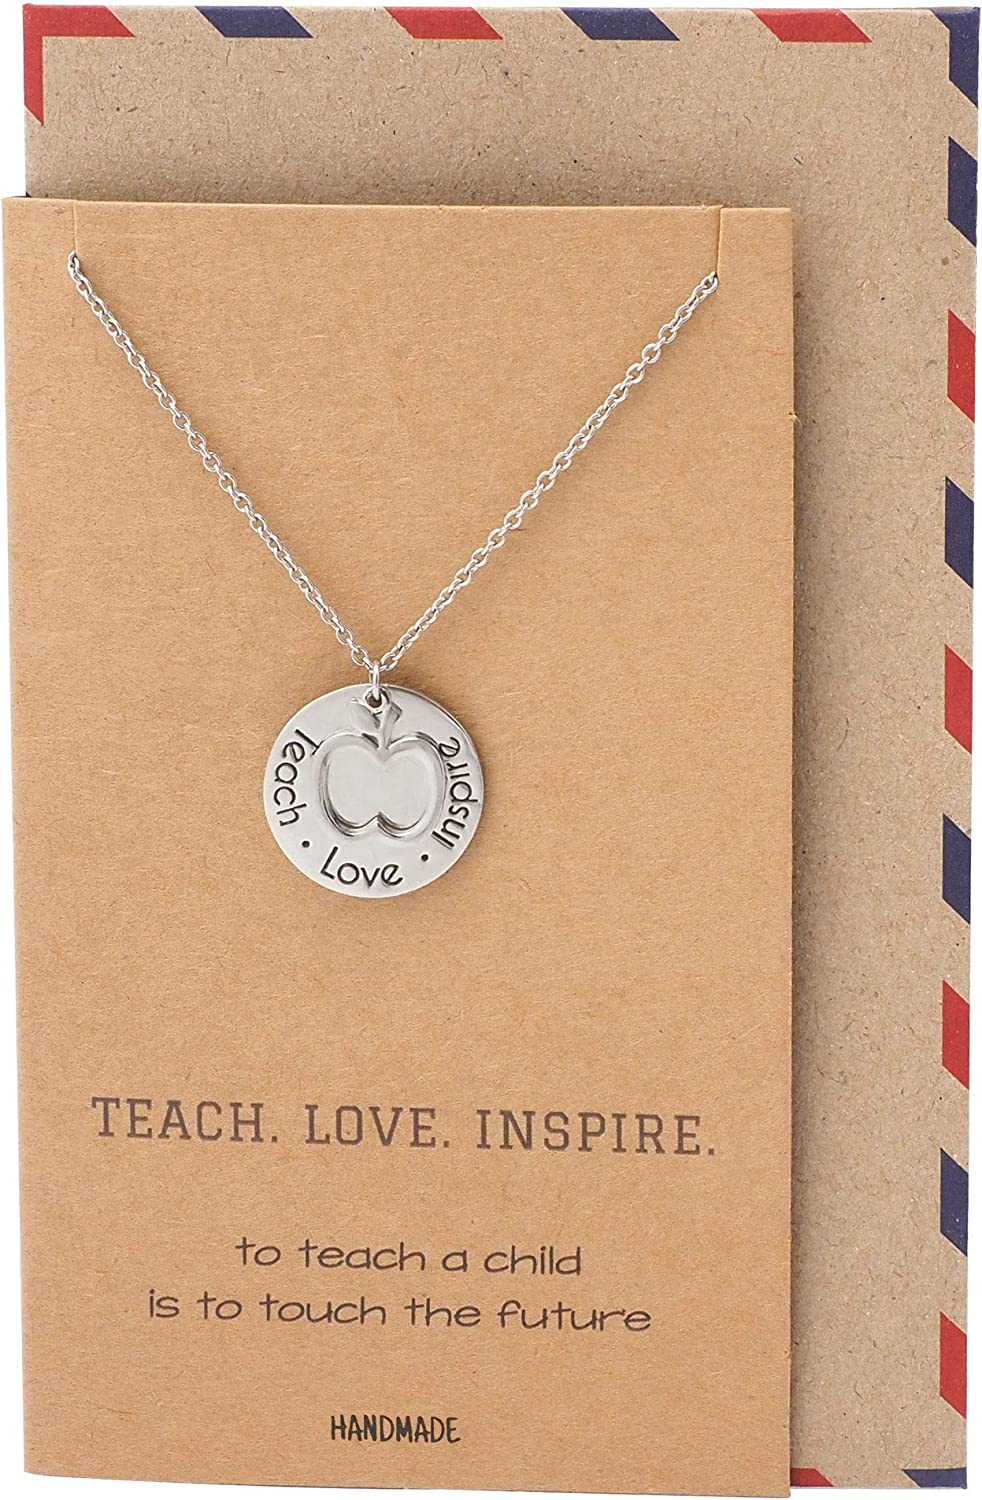 Quan Jewelry Teacher Necklace, Apple Jewelry, Teacher Gifts, Motivational Appreciation Charm, Necklace for Women, Teach Love Inspire Collection : Silver Tone